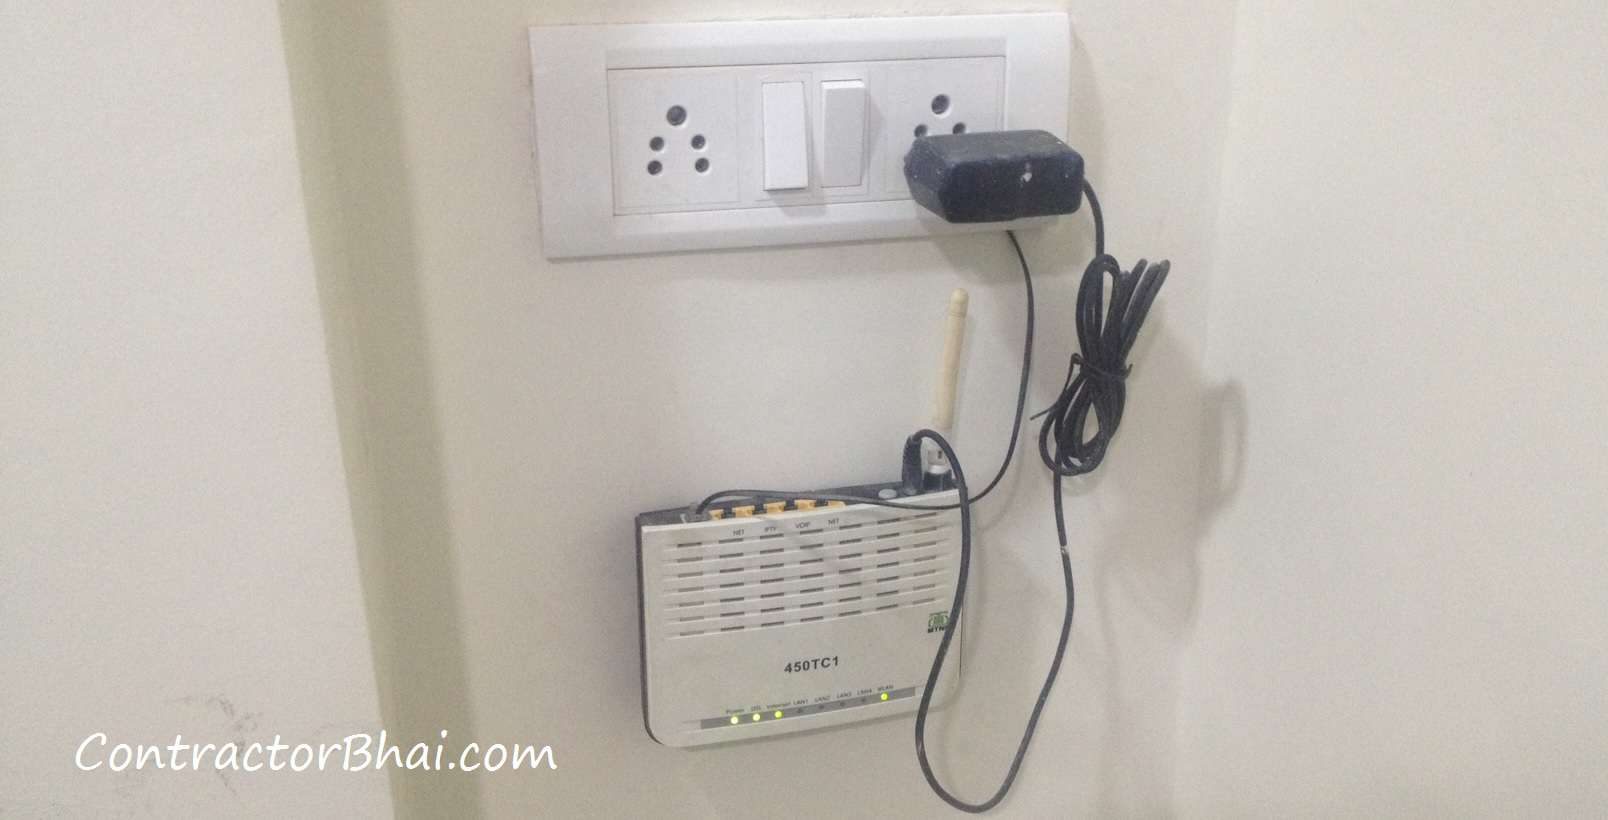 Data Cable Connection Wiring inside Home - ContractorBhai